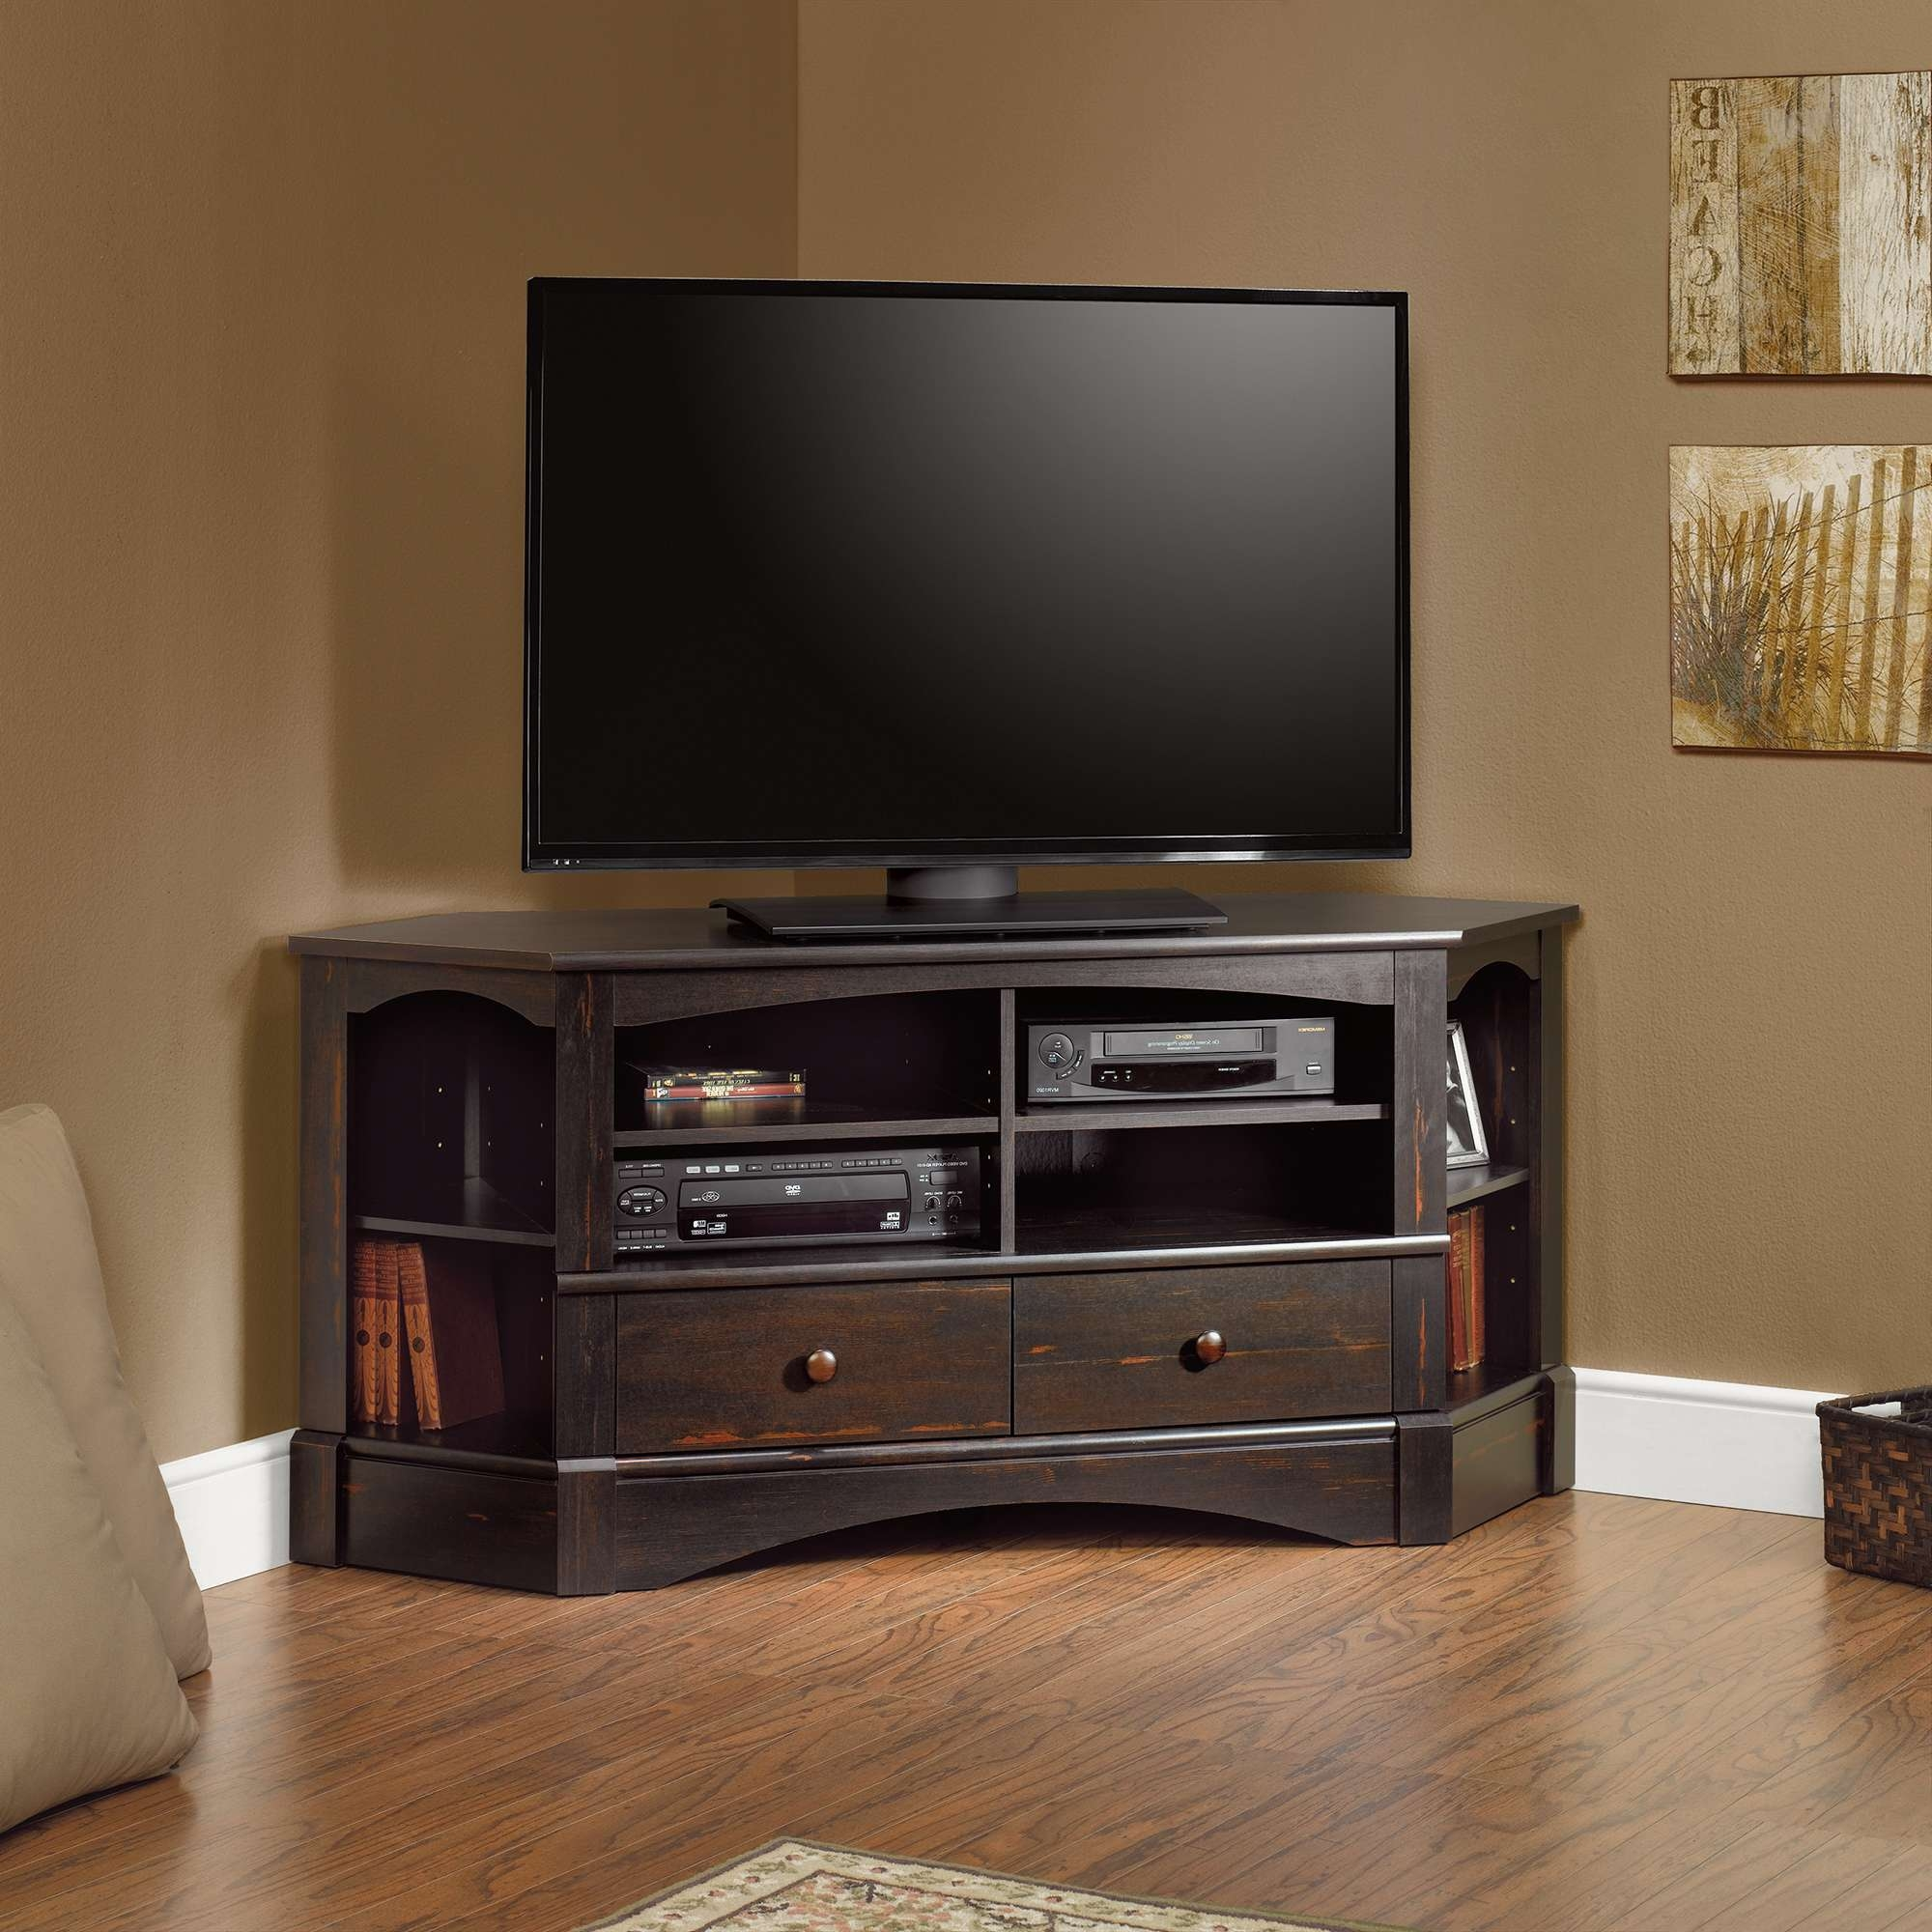 Harbor View | Corner Entertainment Credenza | 402902 | Sauder Throughout Large Corner Tv Cabinets (View 5 of 20)